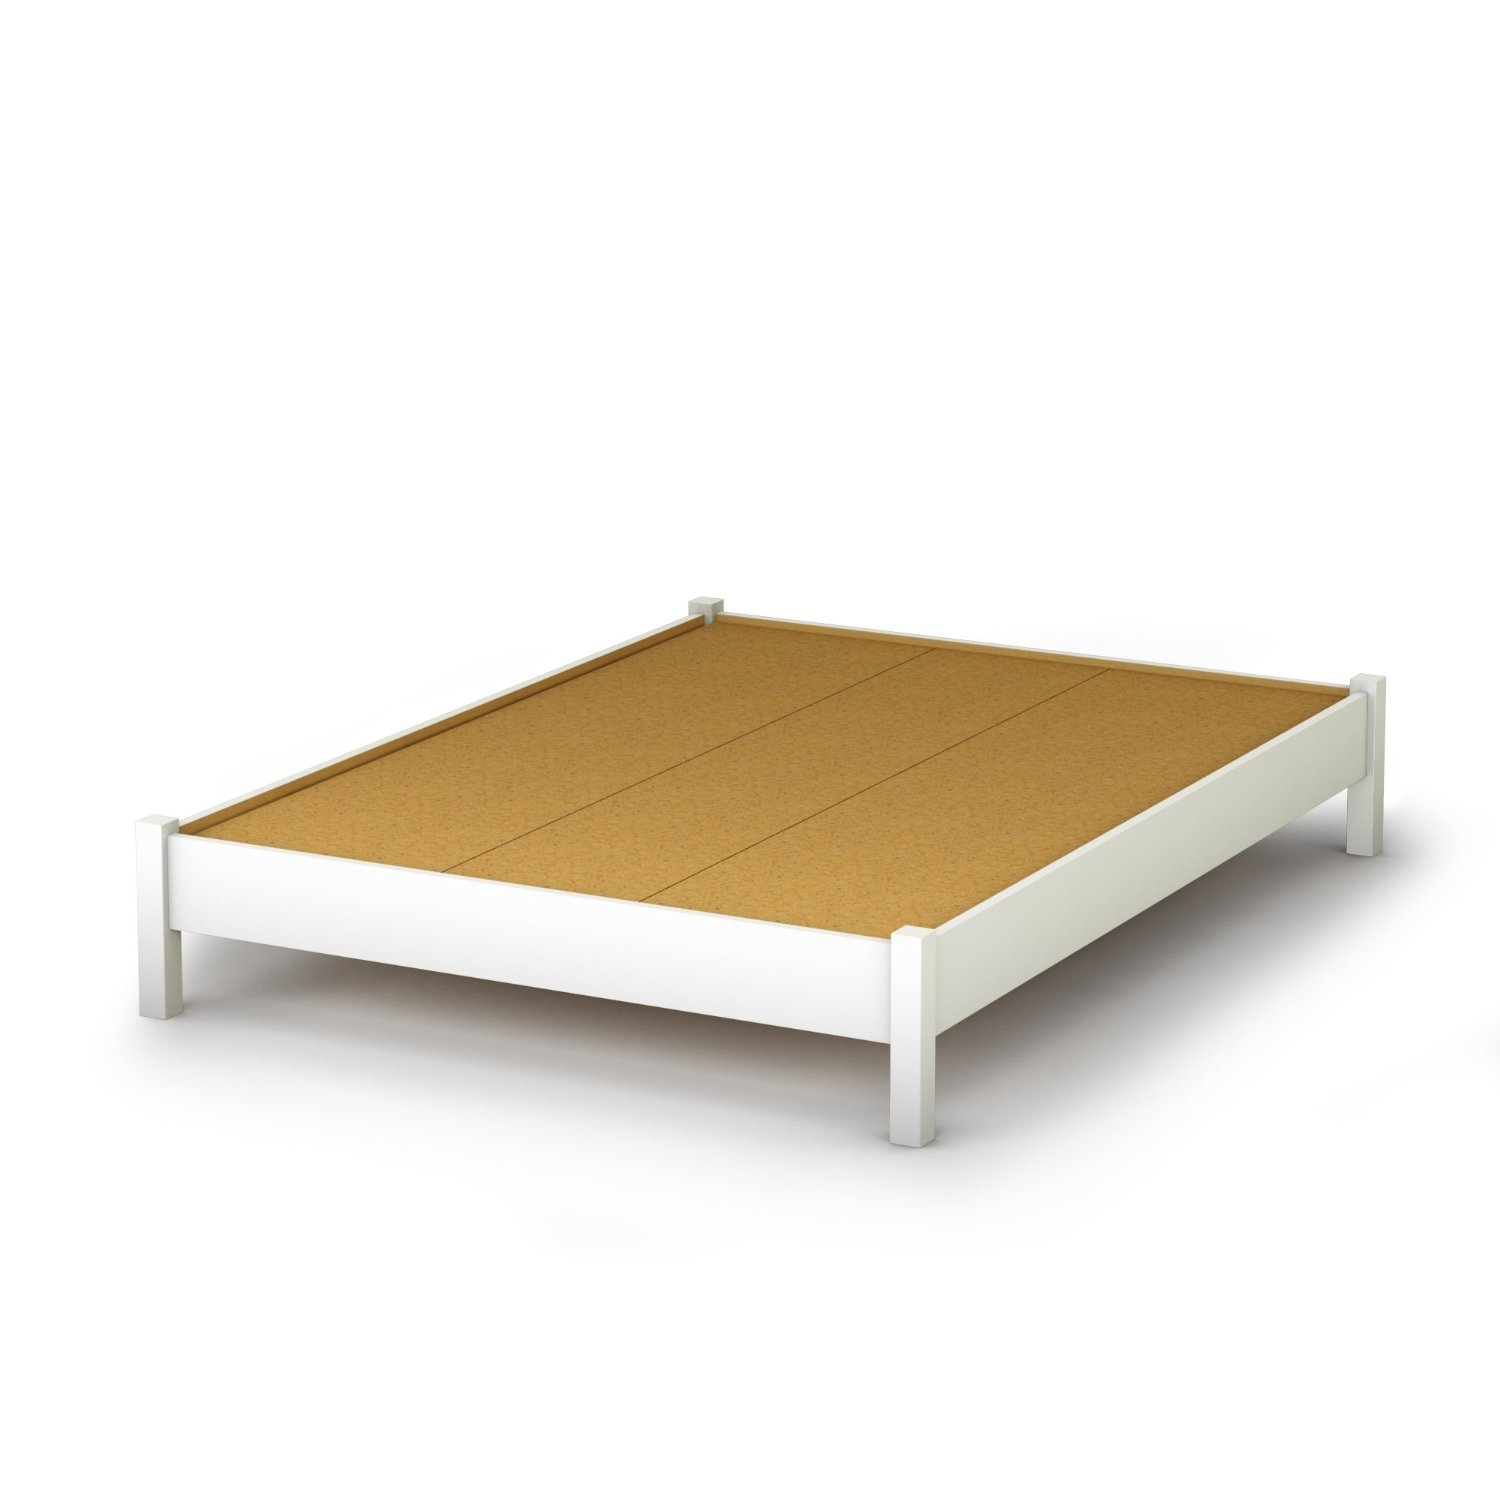 Full Size Simple Platform Bed In White Finish Modern Design Fastfurnishings Com